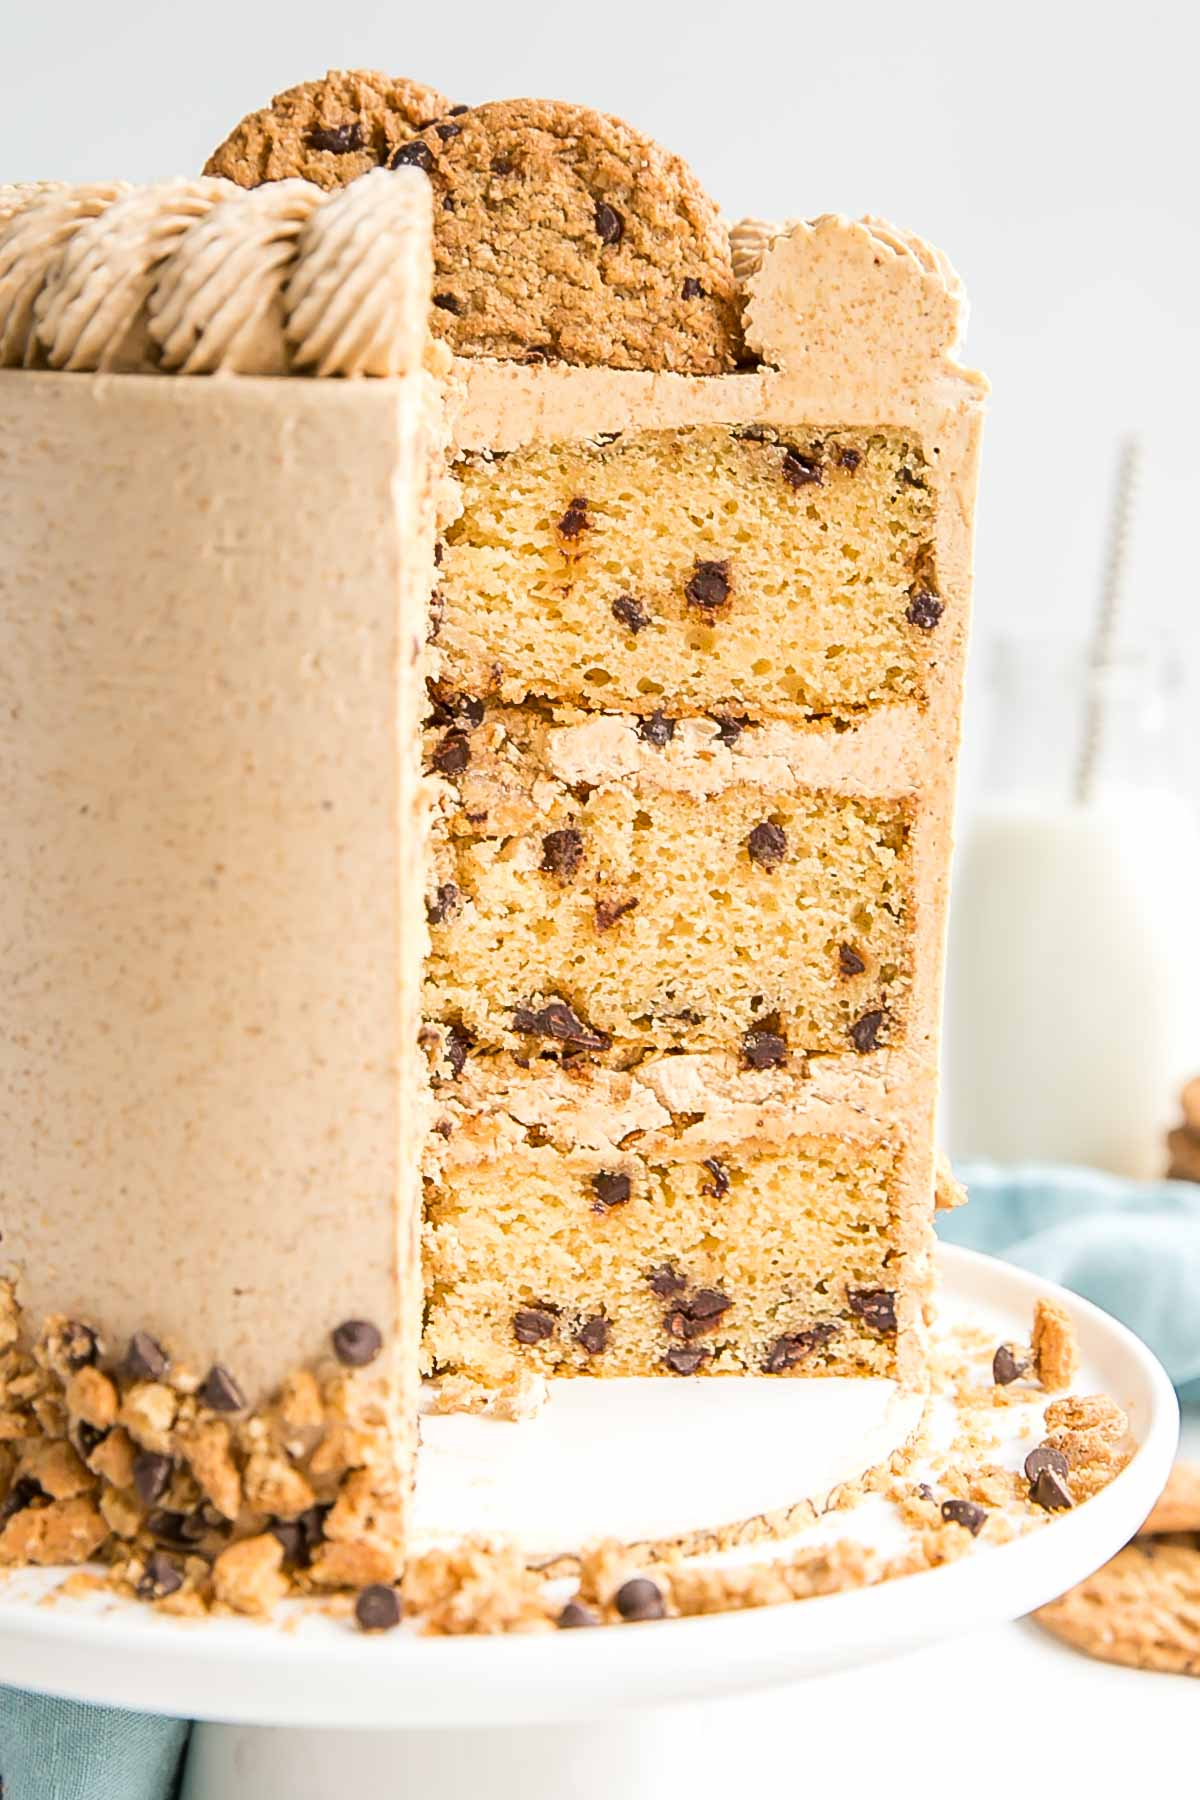 Cross-section of the cake showing the chocolate chip studded cake layers.